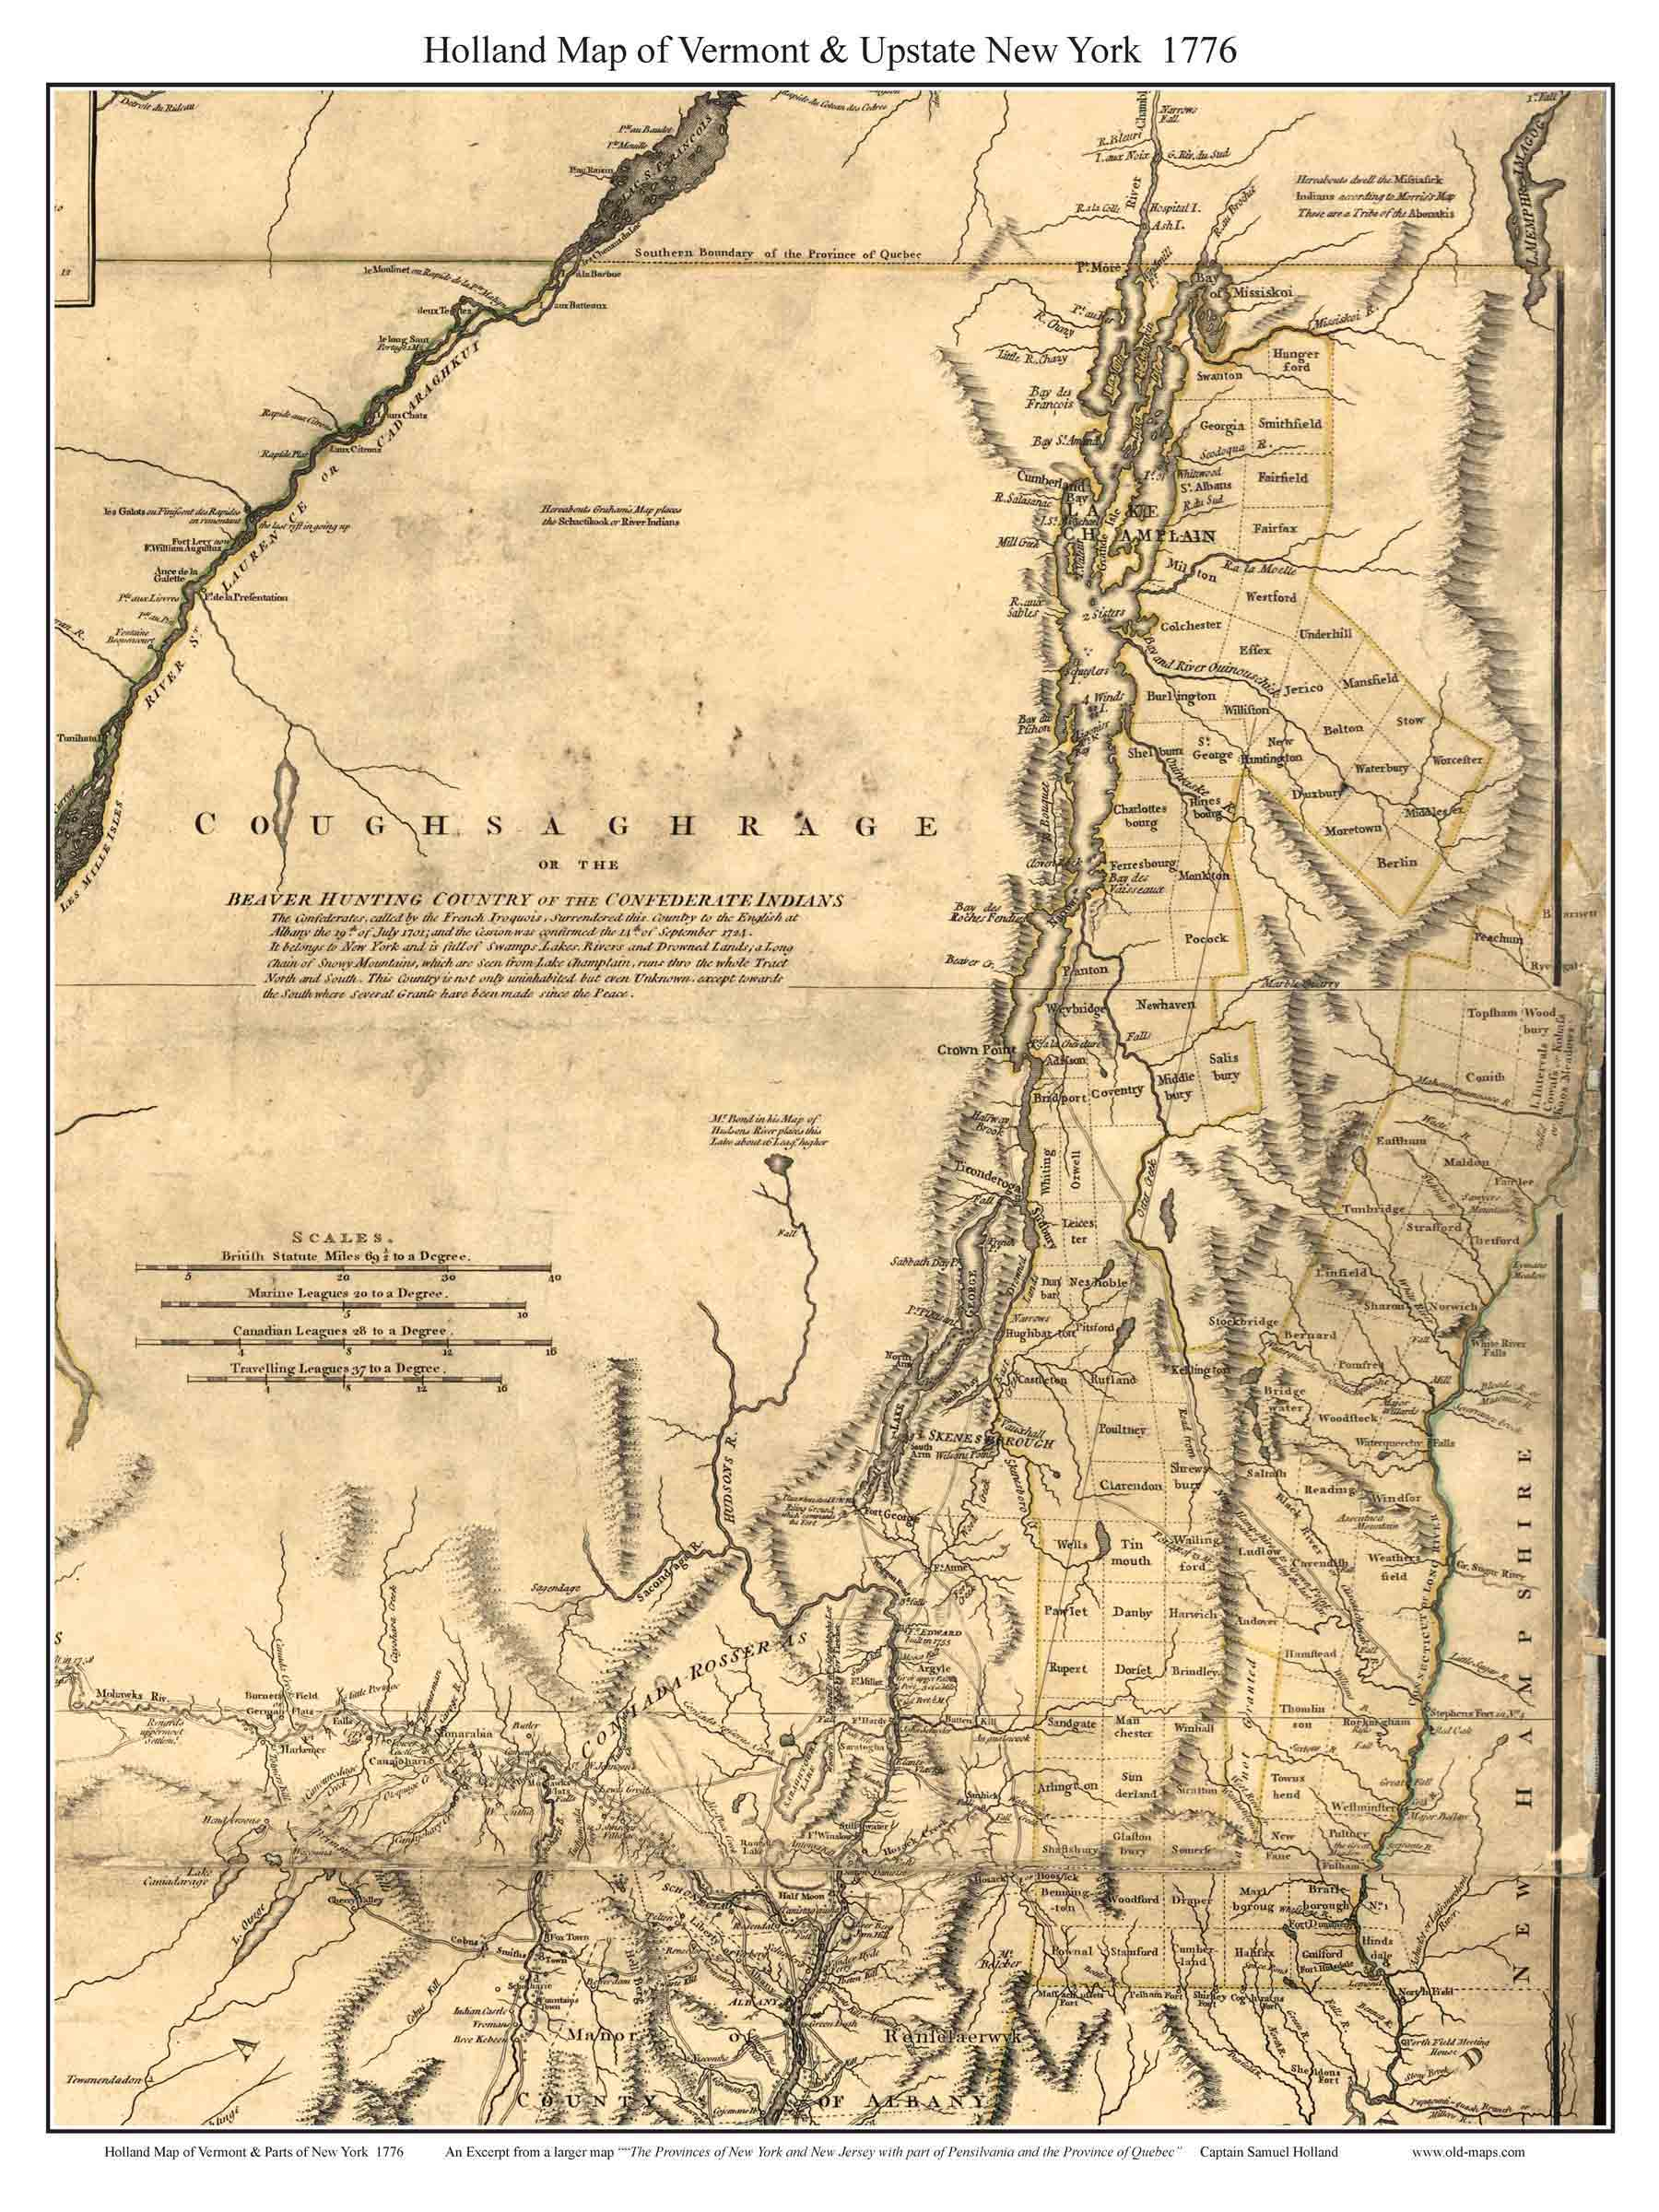 maps of ny state with Vt Paperstatemaps 3 Colonial on Chautauqua besides Hazards moreover Maps besides Mohawk river valley 1775 together with Heart Mysterious Oman.